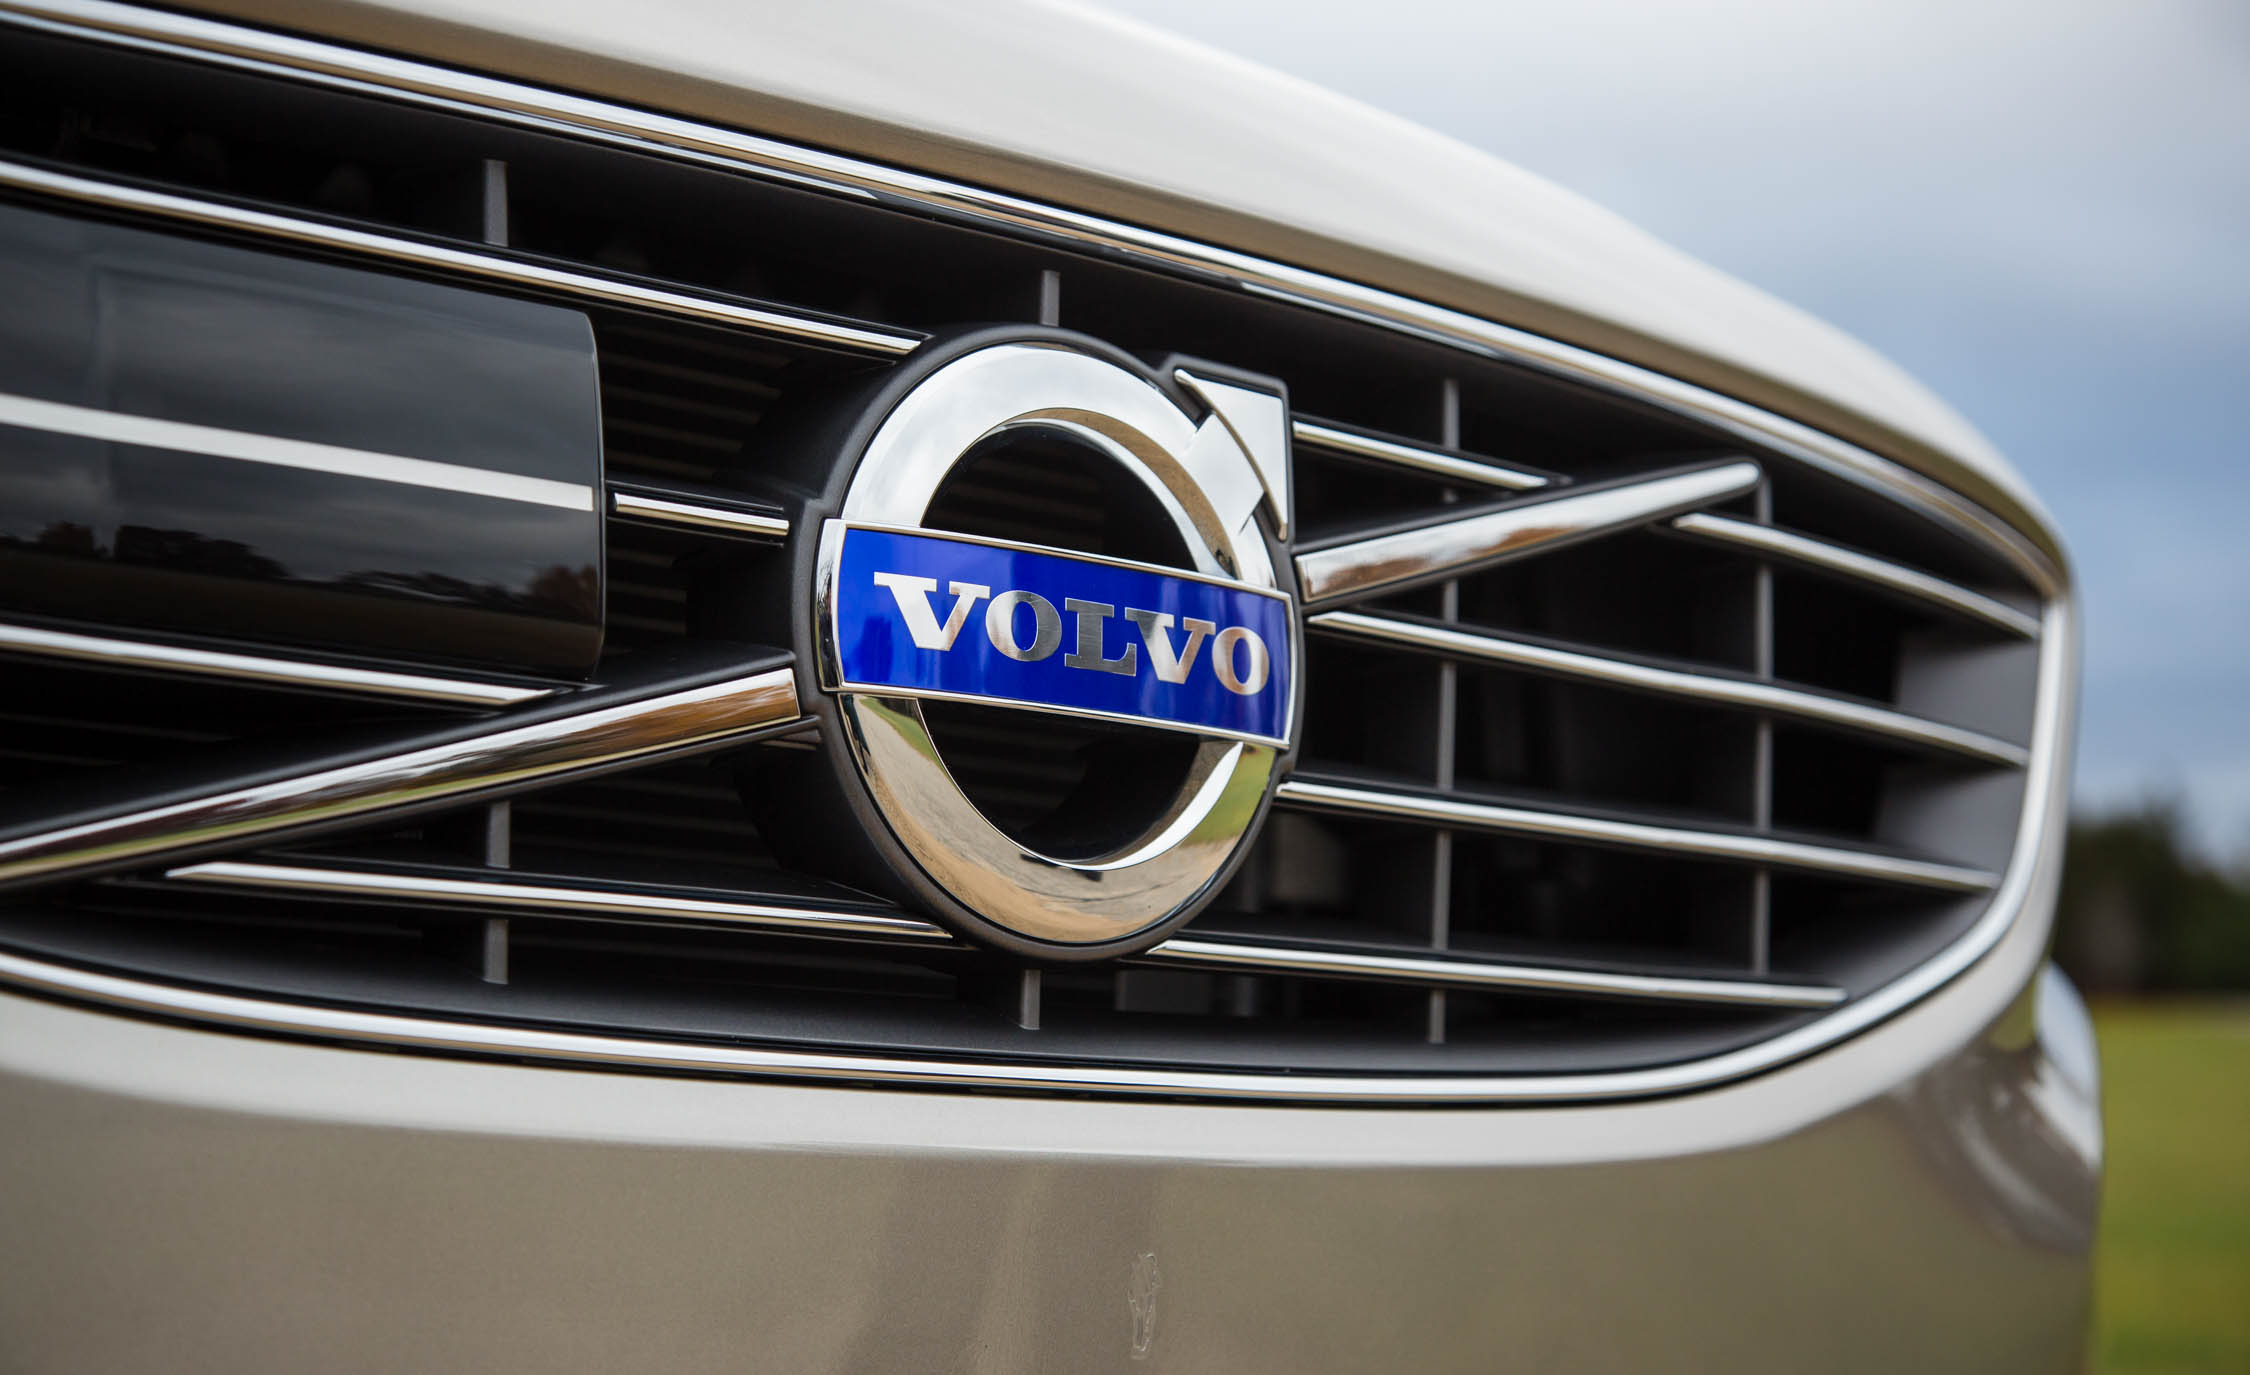 2016 Volvo S60 T5 Inscription Exterior Badge Front